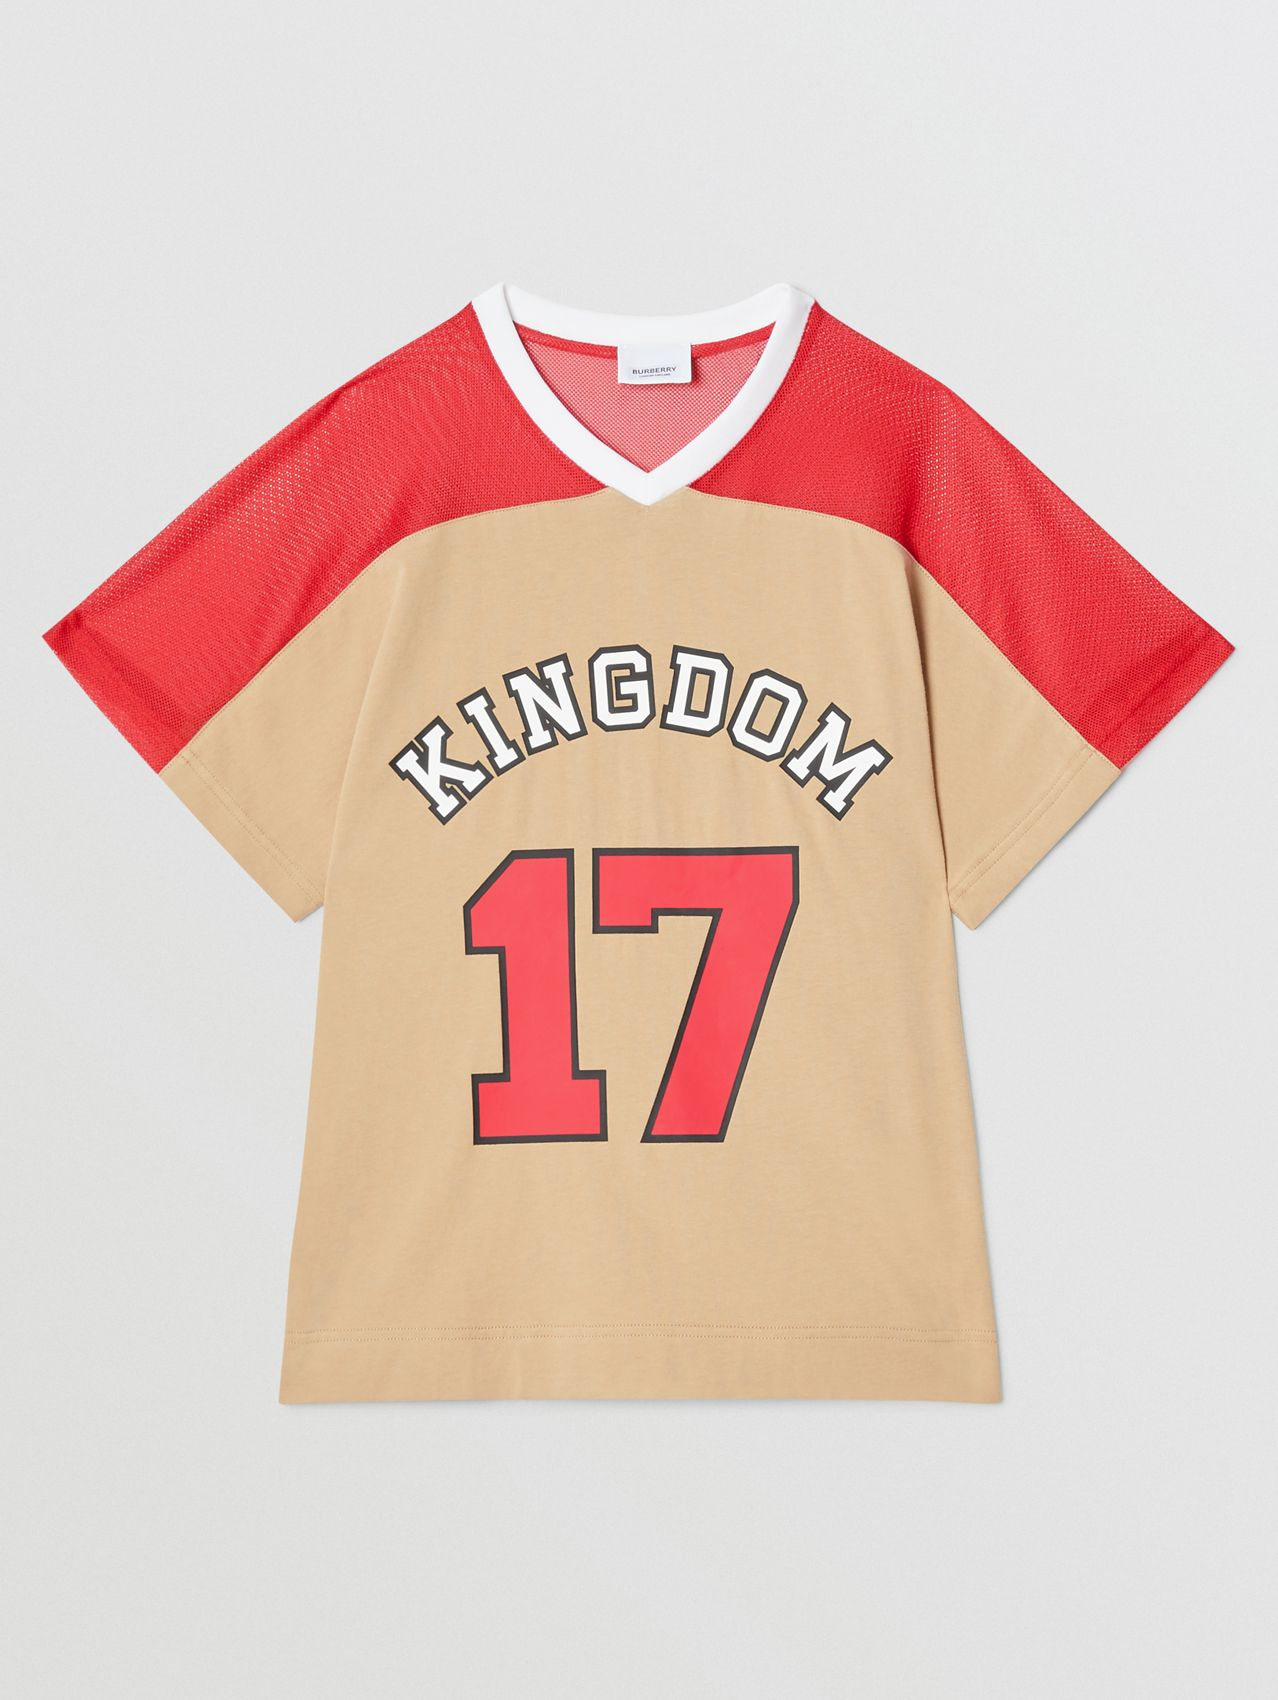 Mesh Panel Kingdom Print Cotton T-shirt (Bright Red)